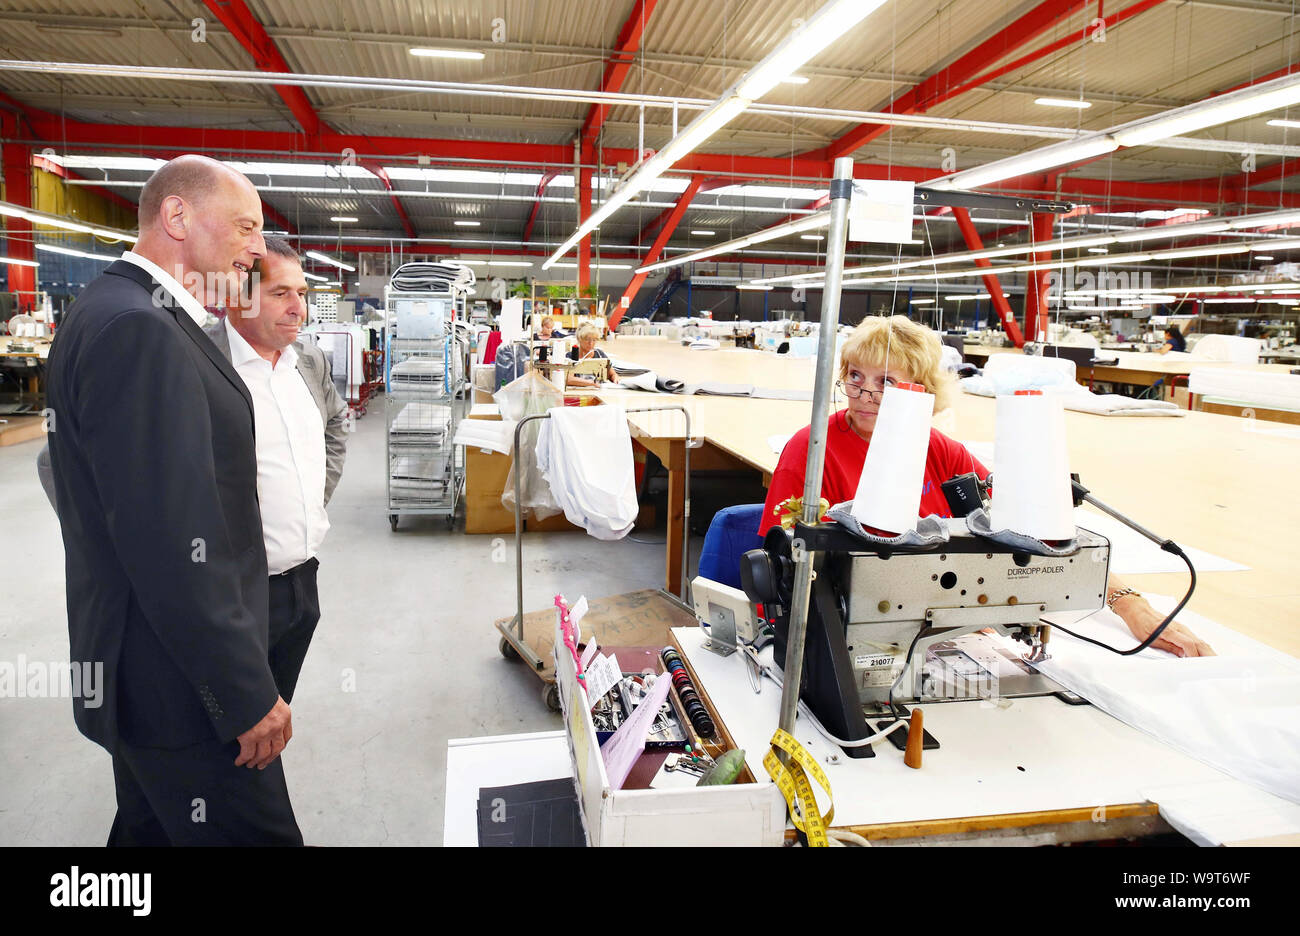 Weida Germany 15th Aug 2019 Wolfgang Tiefensee Spd L Thuringia S Minister Of Economic Affairs Visits The Breckle Mattress Plant And Is Accompanied By Gerd Breckle Managing Director Of Breckle Matratzenwerk Weida Gmbh